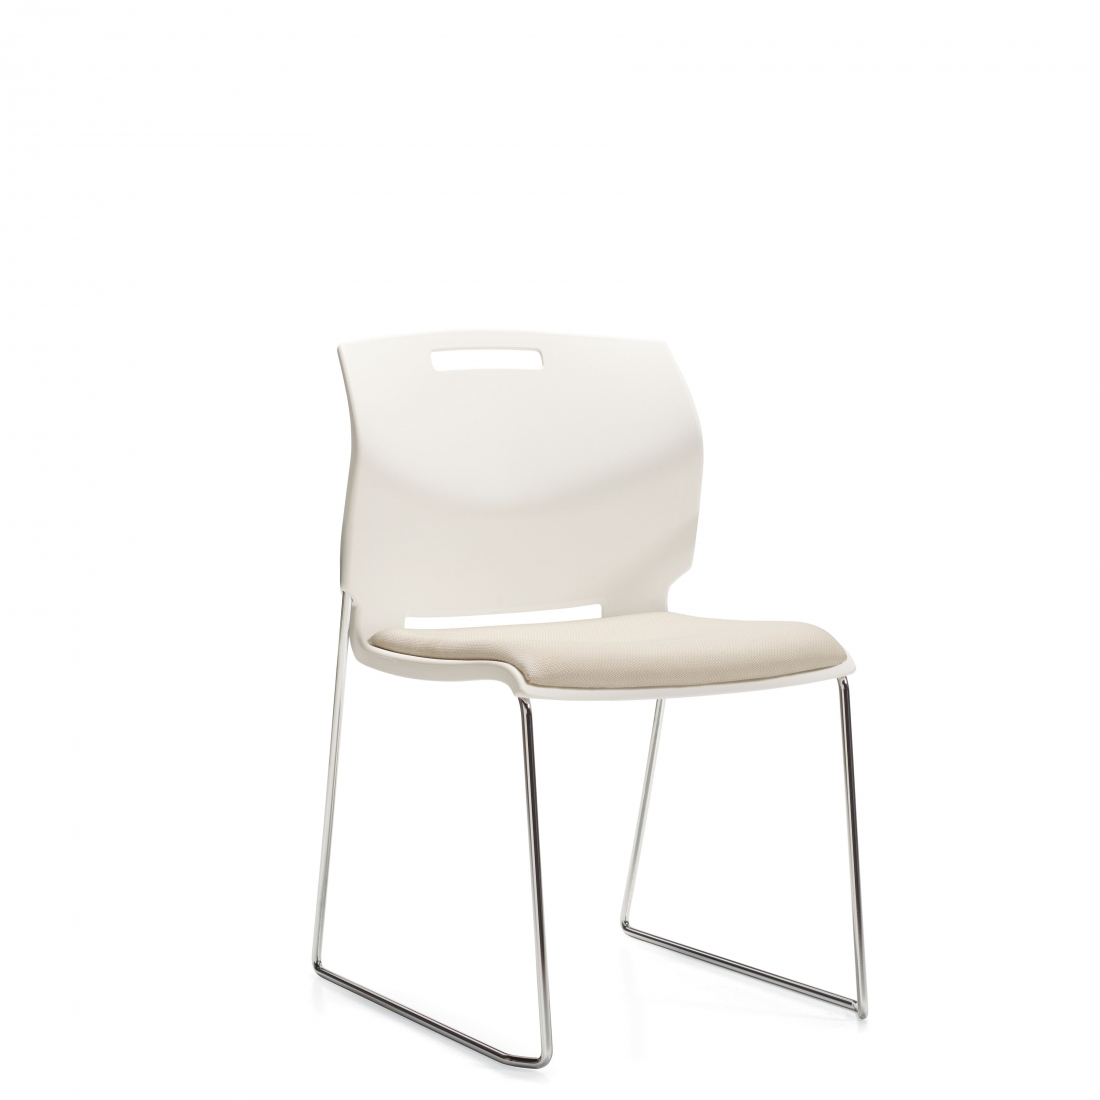 Popcorn Side Chair with Upholstered Seat